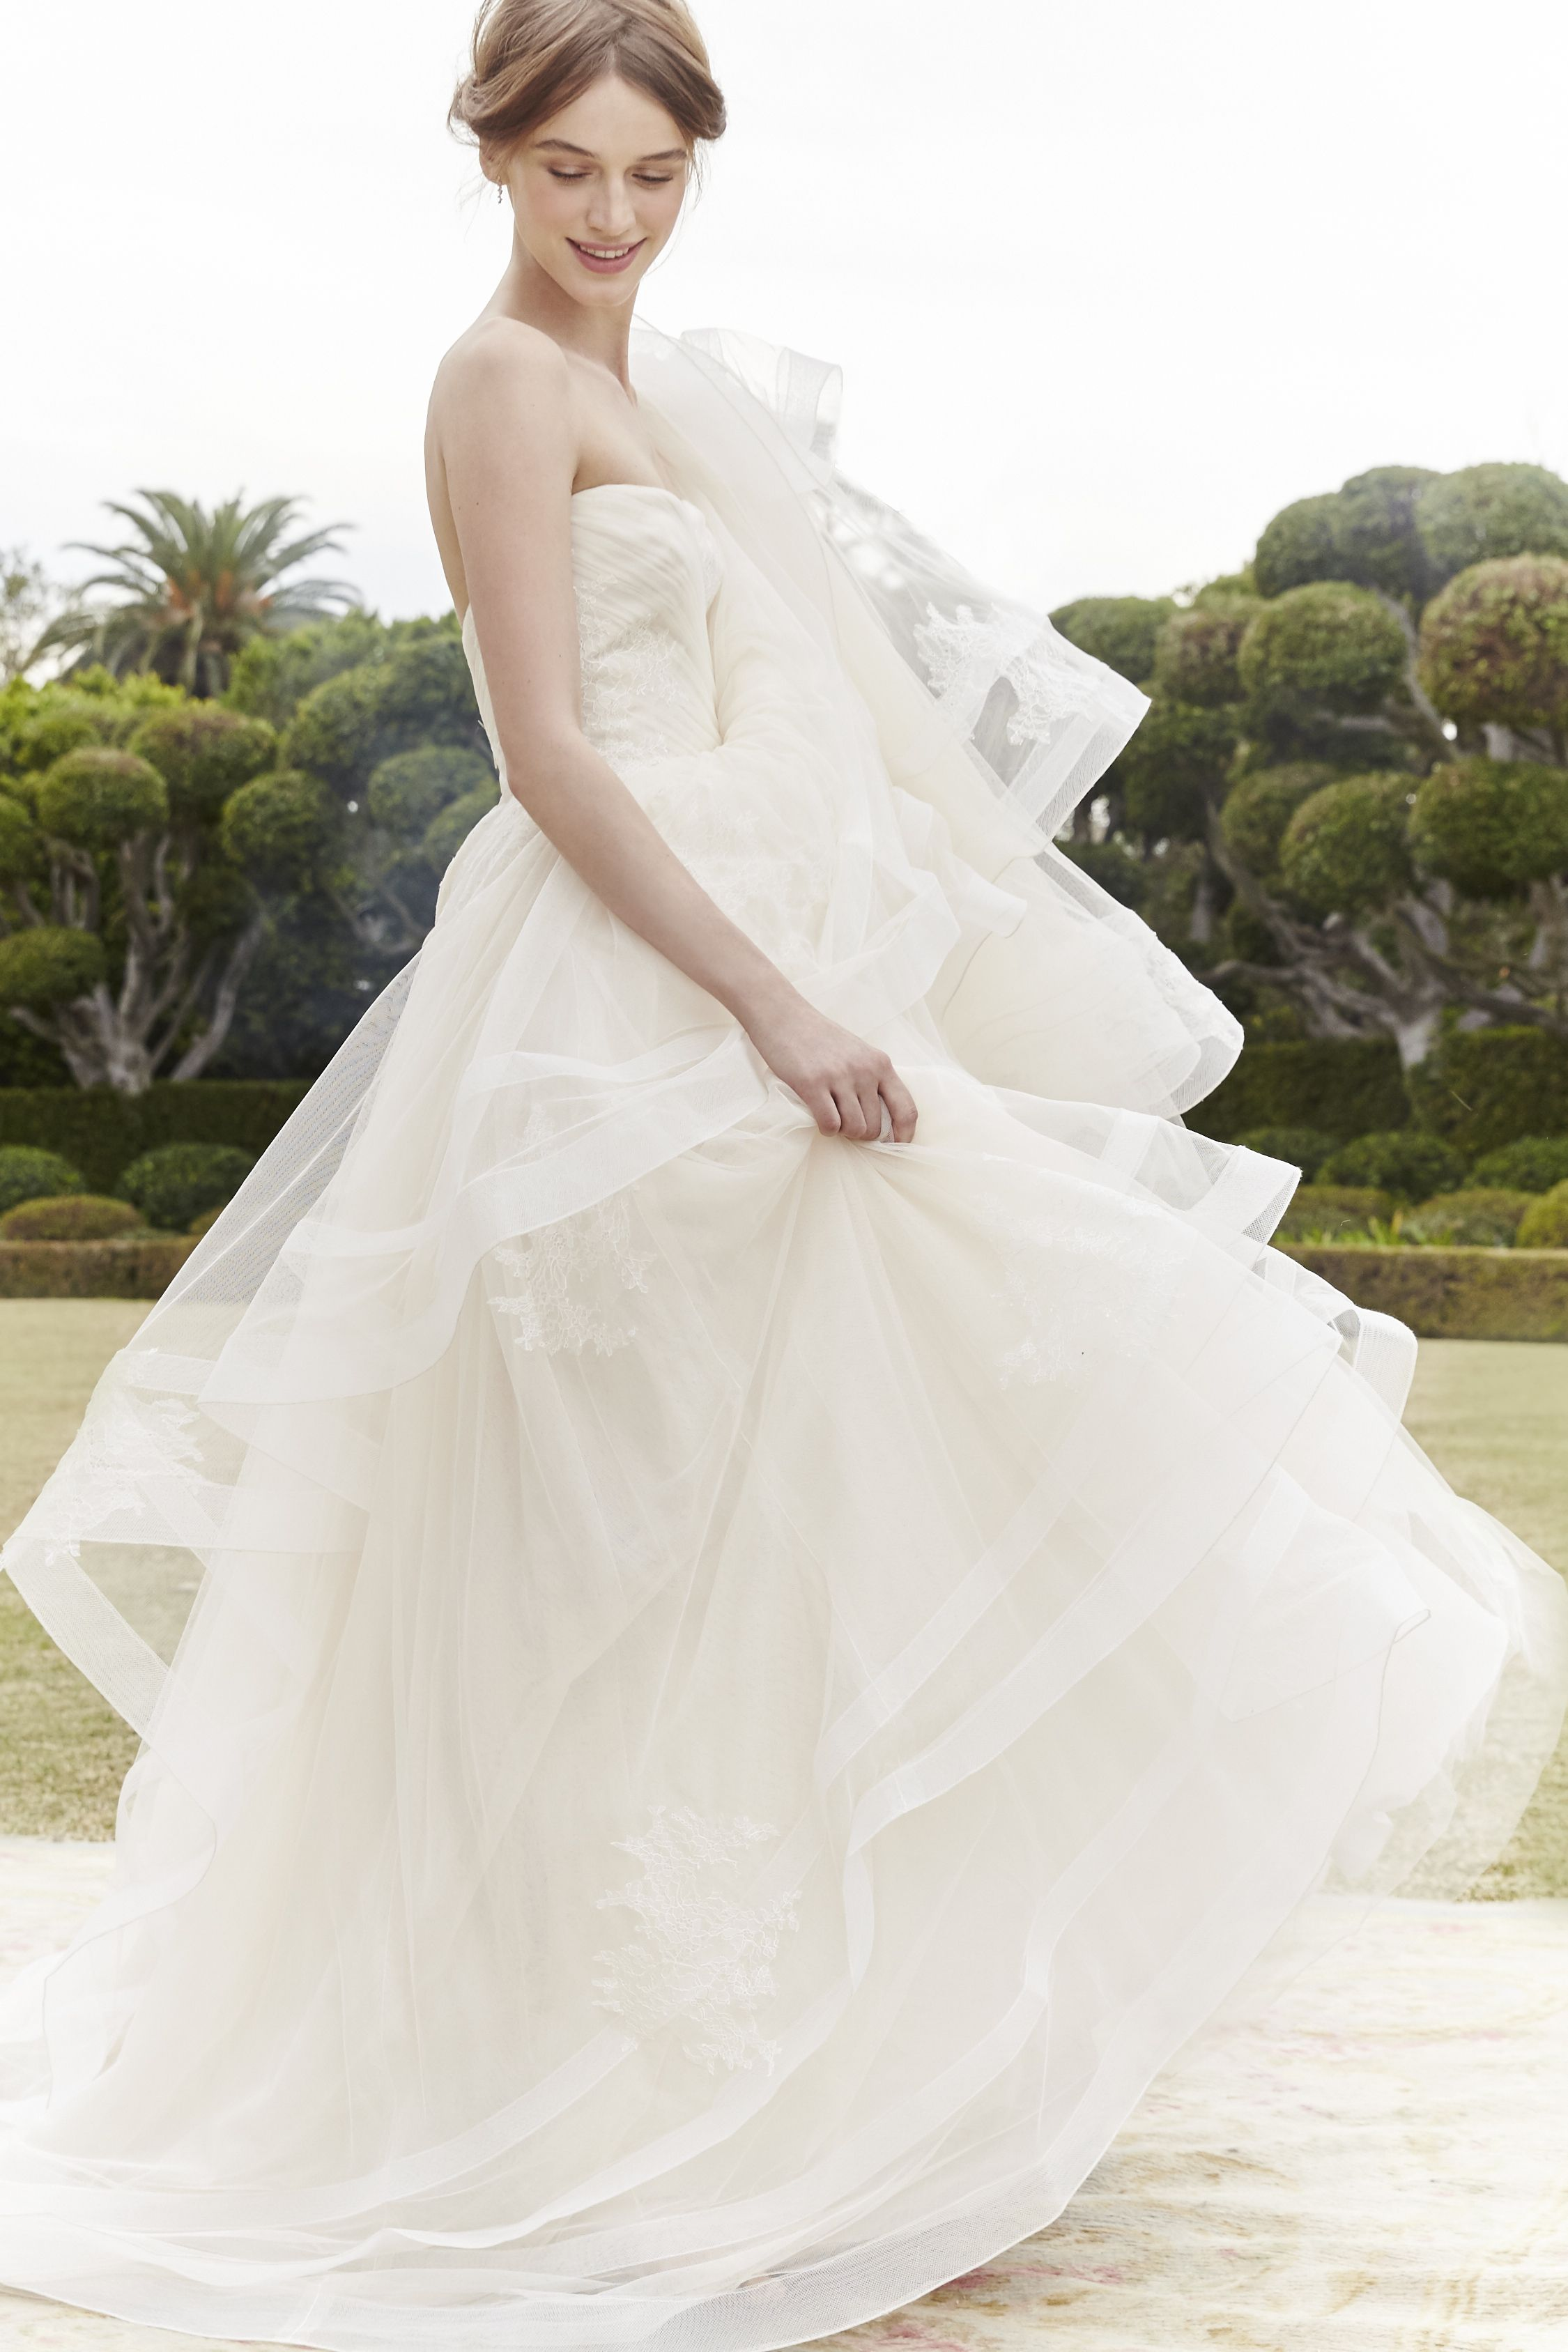 Elite wedding dresses  Monique Lhuillier  Someday  Pinterest  Monique lhuillier